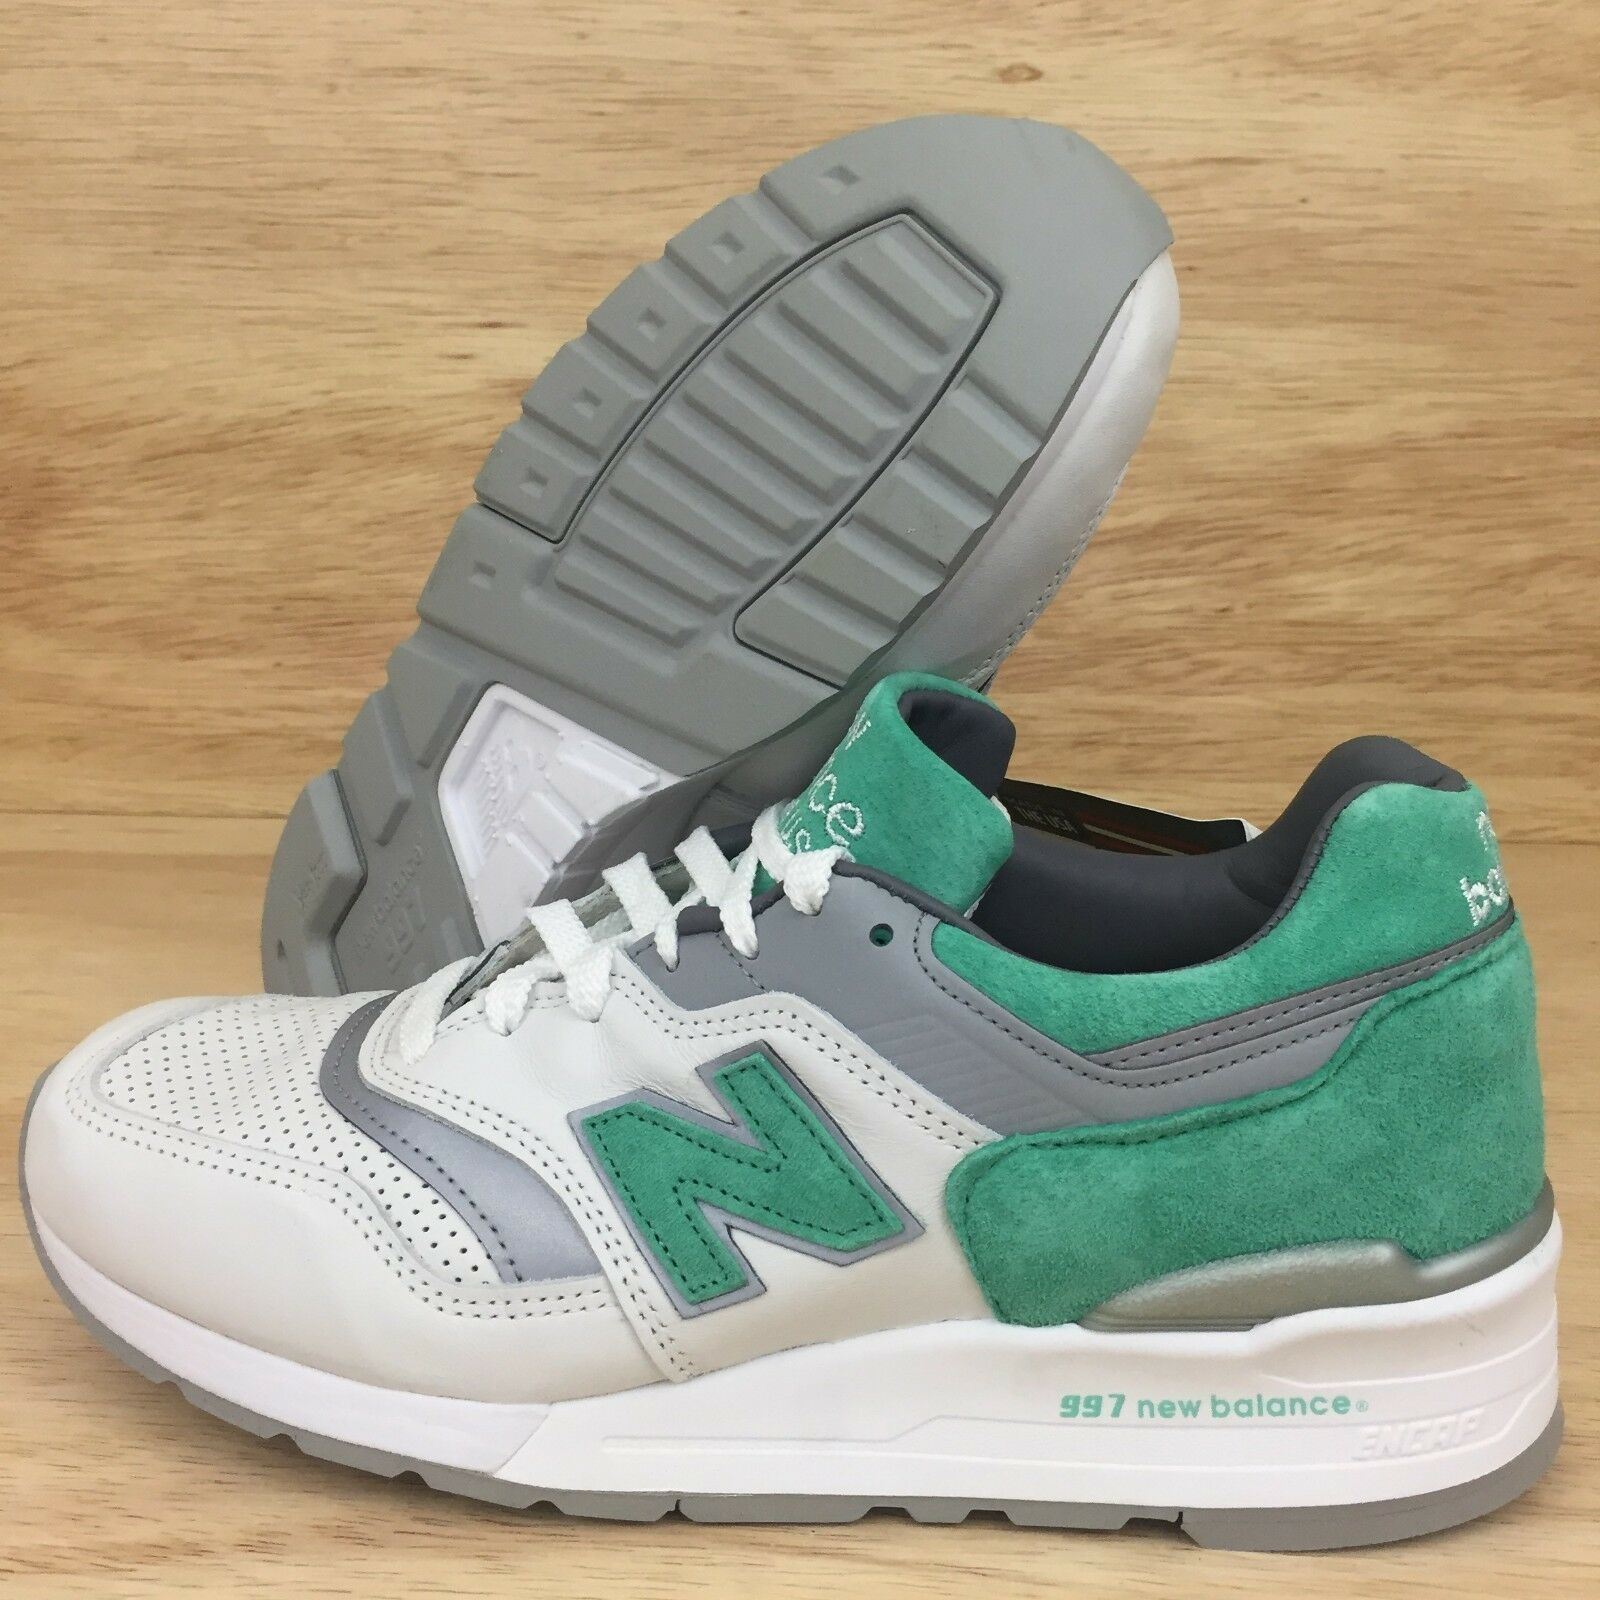 Balance In New Made Leather Mint 997 Vert Blanc Chaussures aqq4FAw